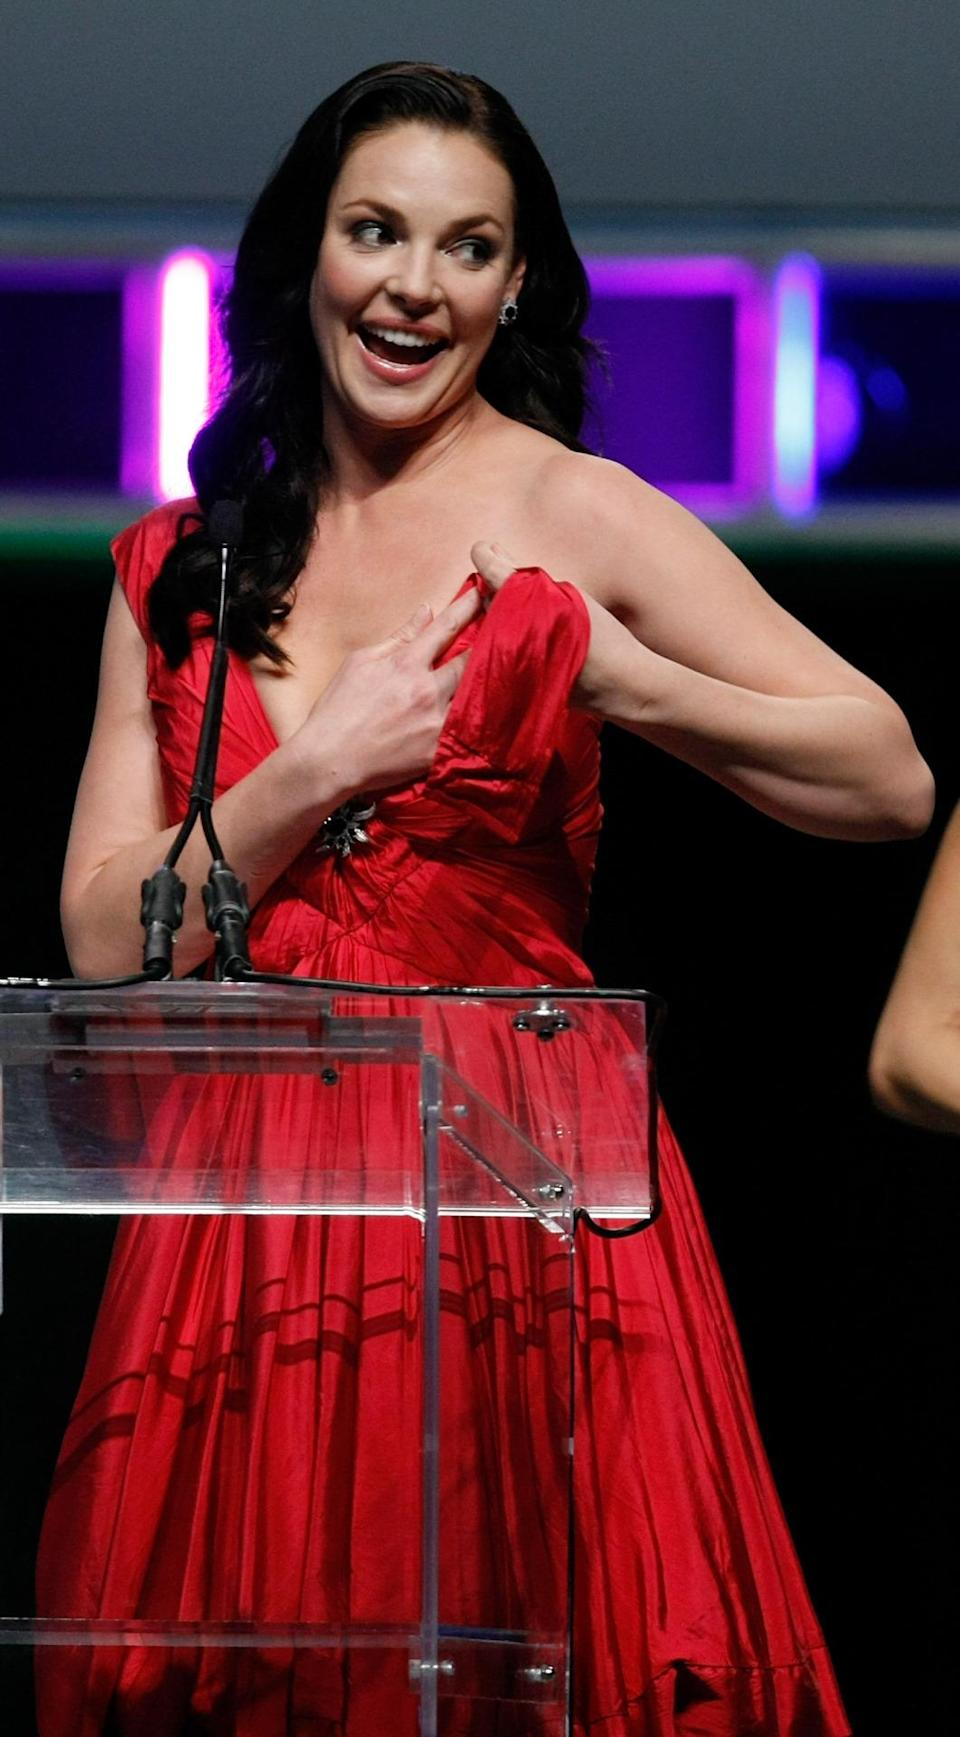 <p>Former 'Grey's Anatomy' actress Katherine Heigl experienced every woman's nightmare at the 2010 ShoWest ceremony. Like the pro she is, she swiftly put her dress back together and made light of the situation. <i>[Photo: Getty]</i></p>